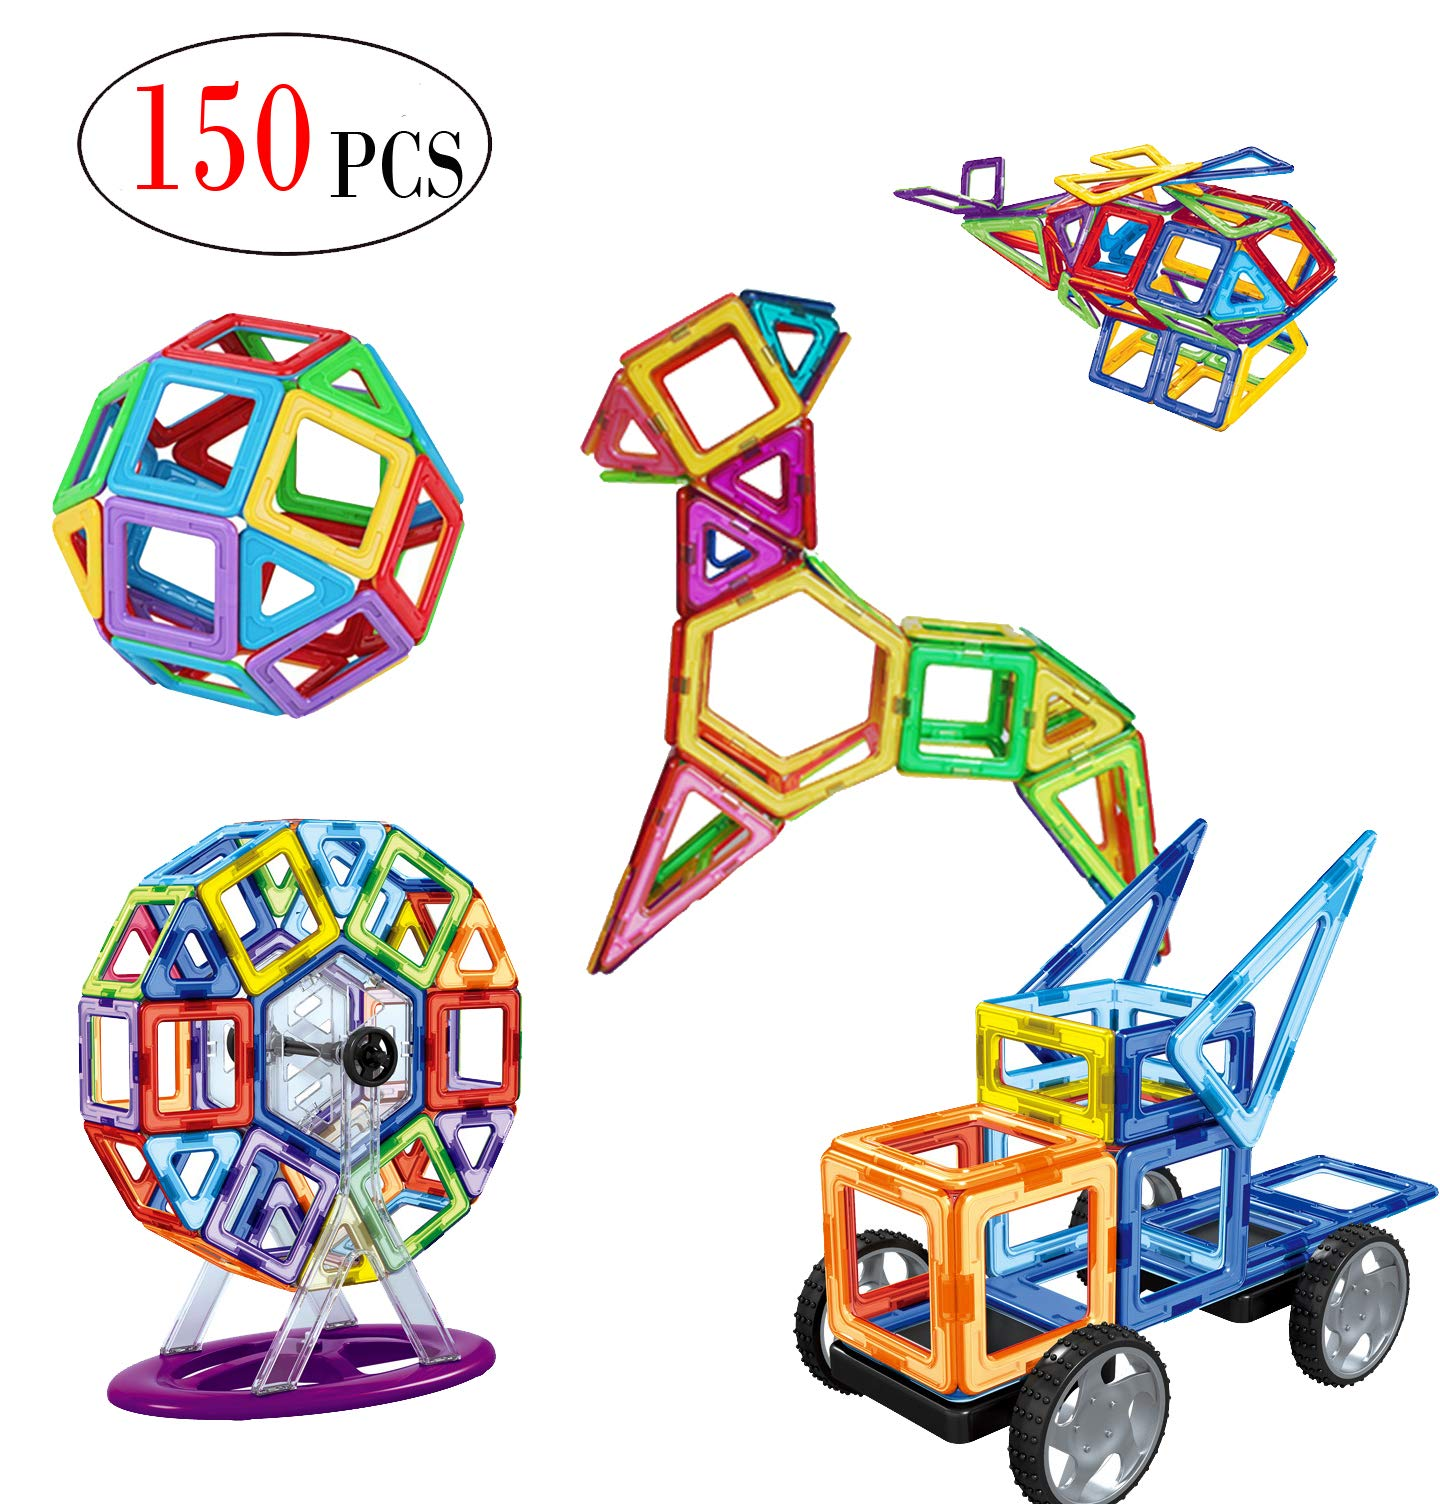 DreambuilderToy Most Complete Magnetic Shapes, Magnetic Tiles, Magnetic Blocks Building Toys Tiles for Kids, Triangles,Squares archs, sectors, semi Circles, Diamonds,Trapezoid etc(150 PC Set)